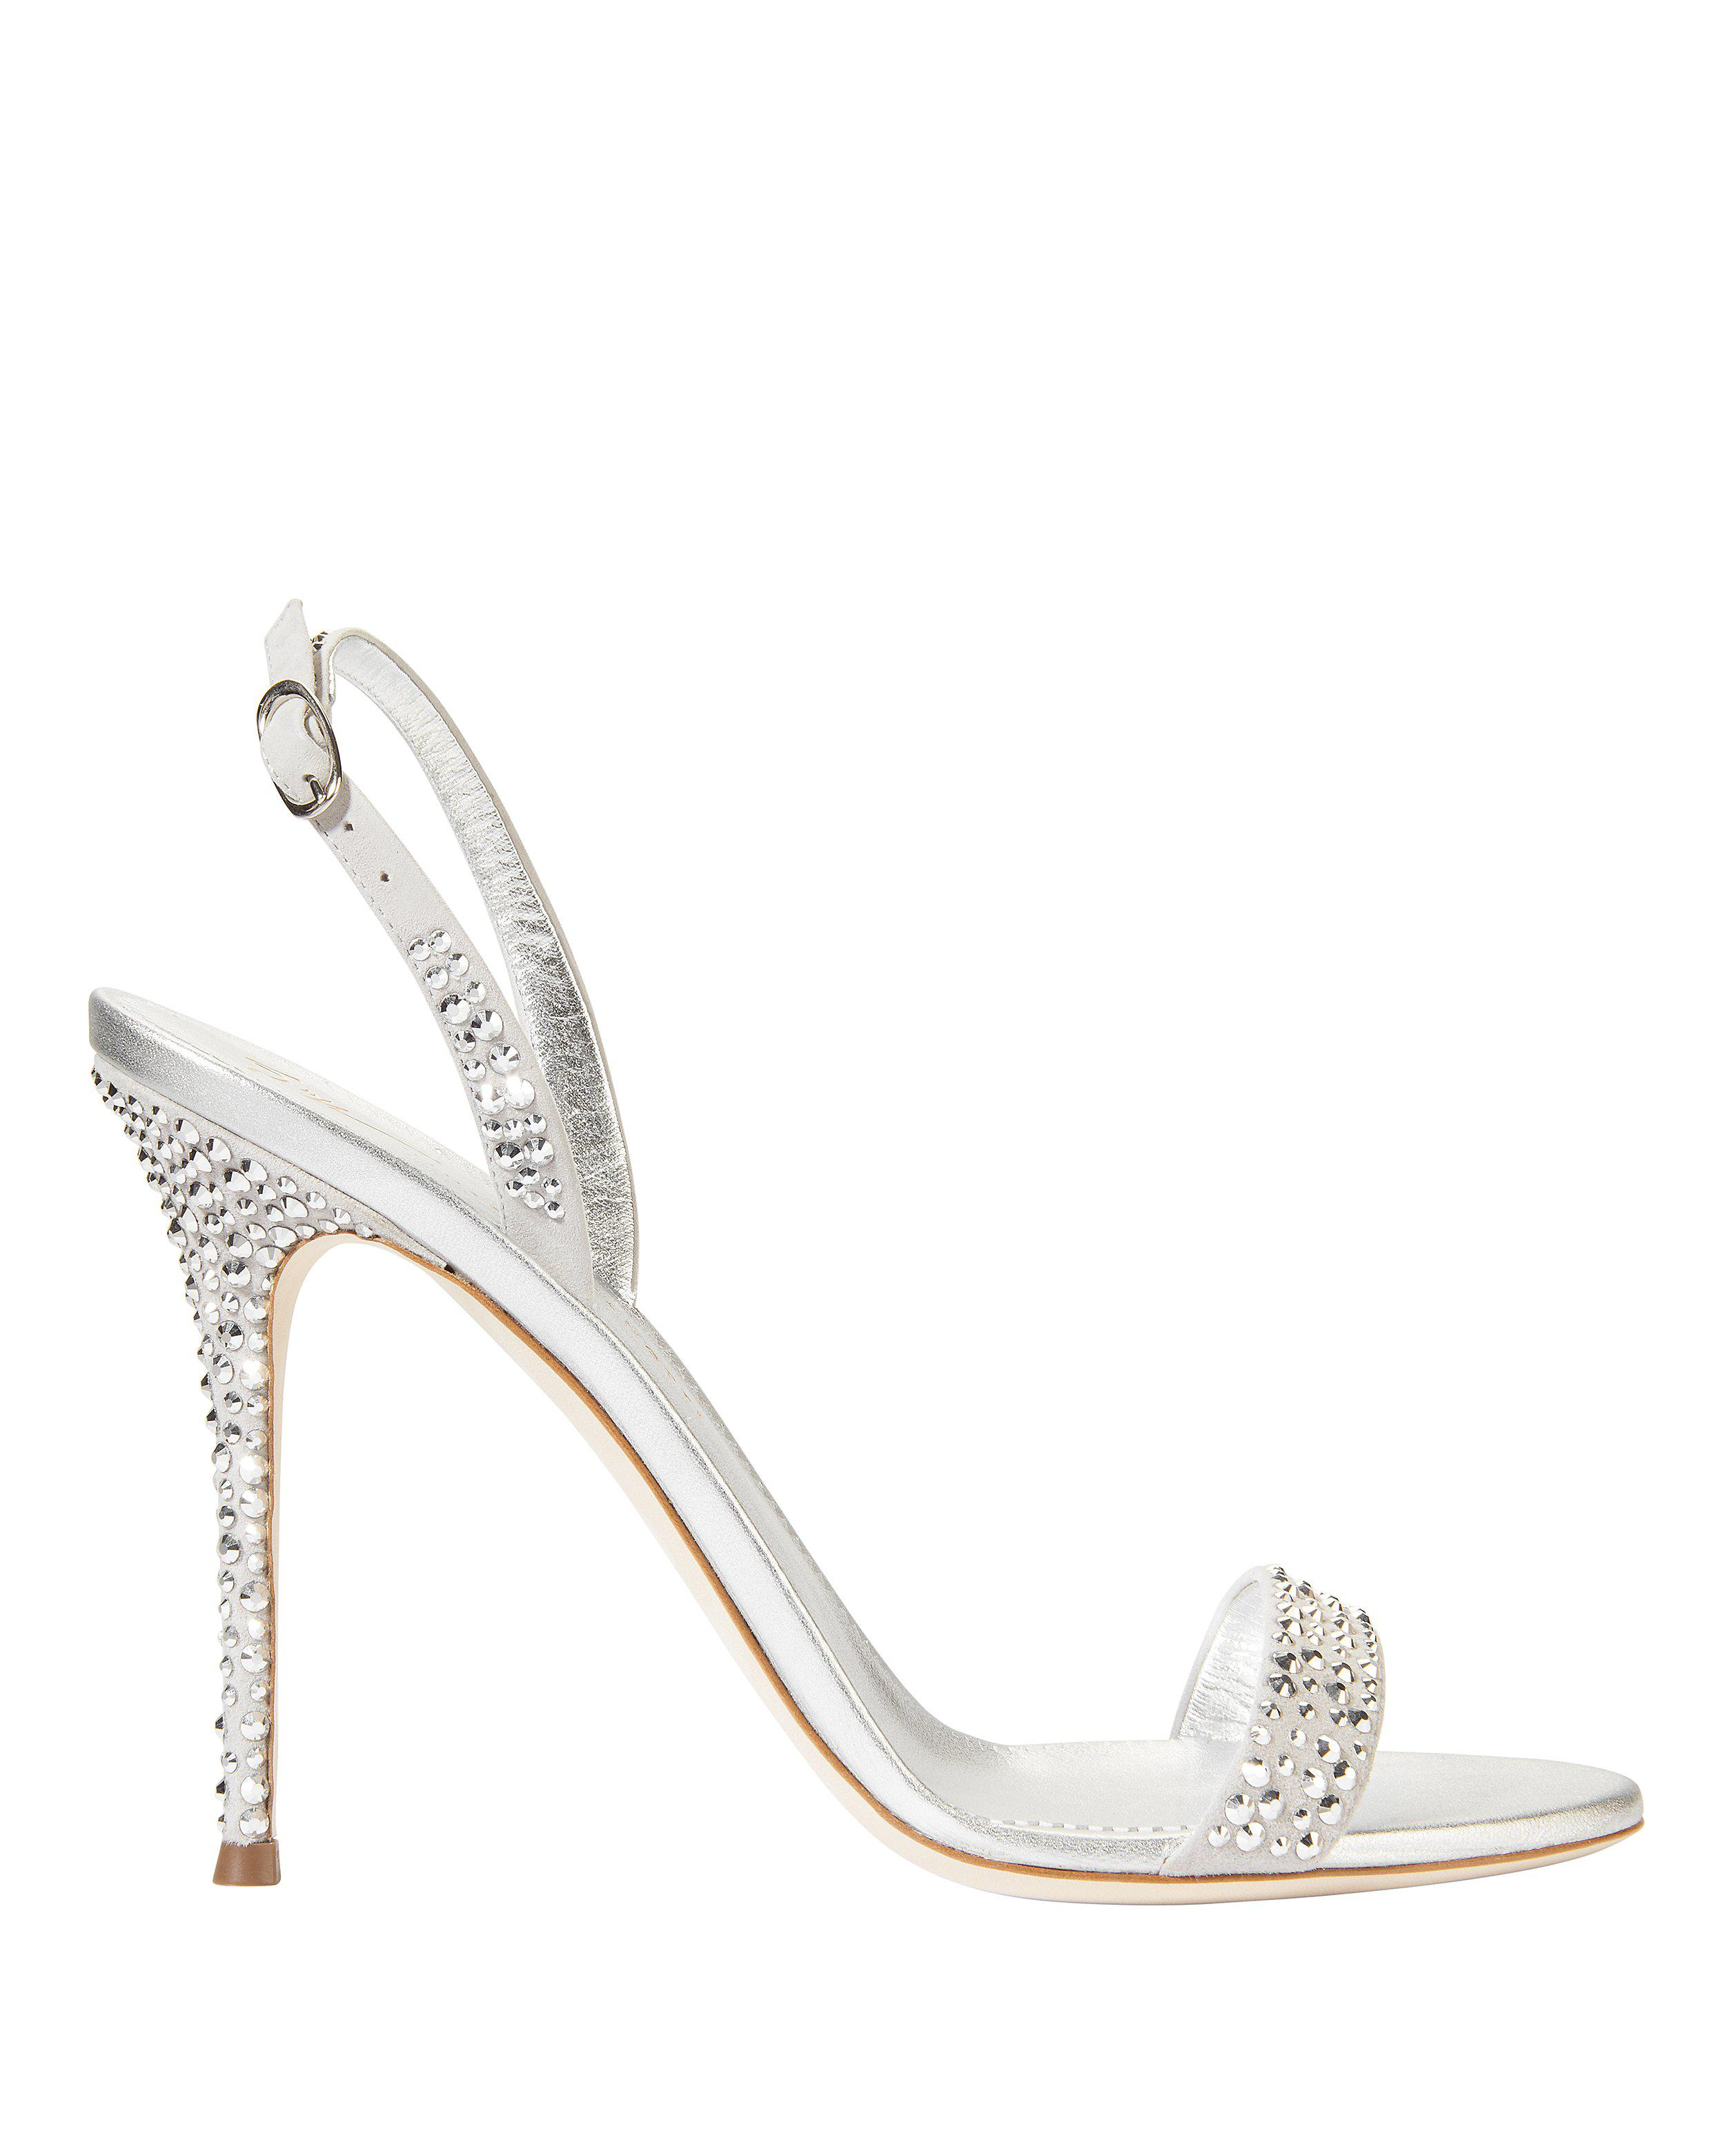 28d03e7cd Lyst - Giuseppe Zanotti Adaile Stiletto Sandals in Metallic